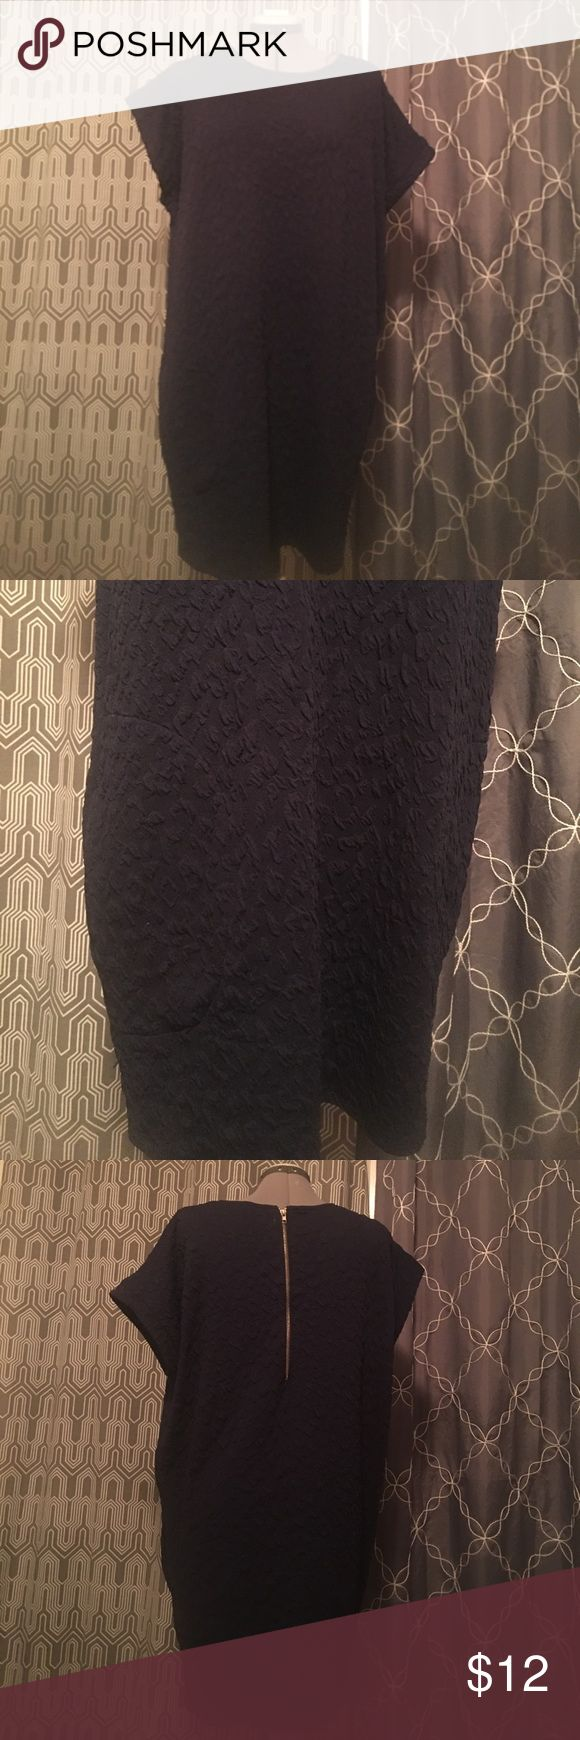 Navy sack dress The GB navy textured sack dress is such a easy throw on piece! Never have to iron it! Half exposed zipper in the back and pockets! Gianni Bini Dresses